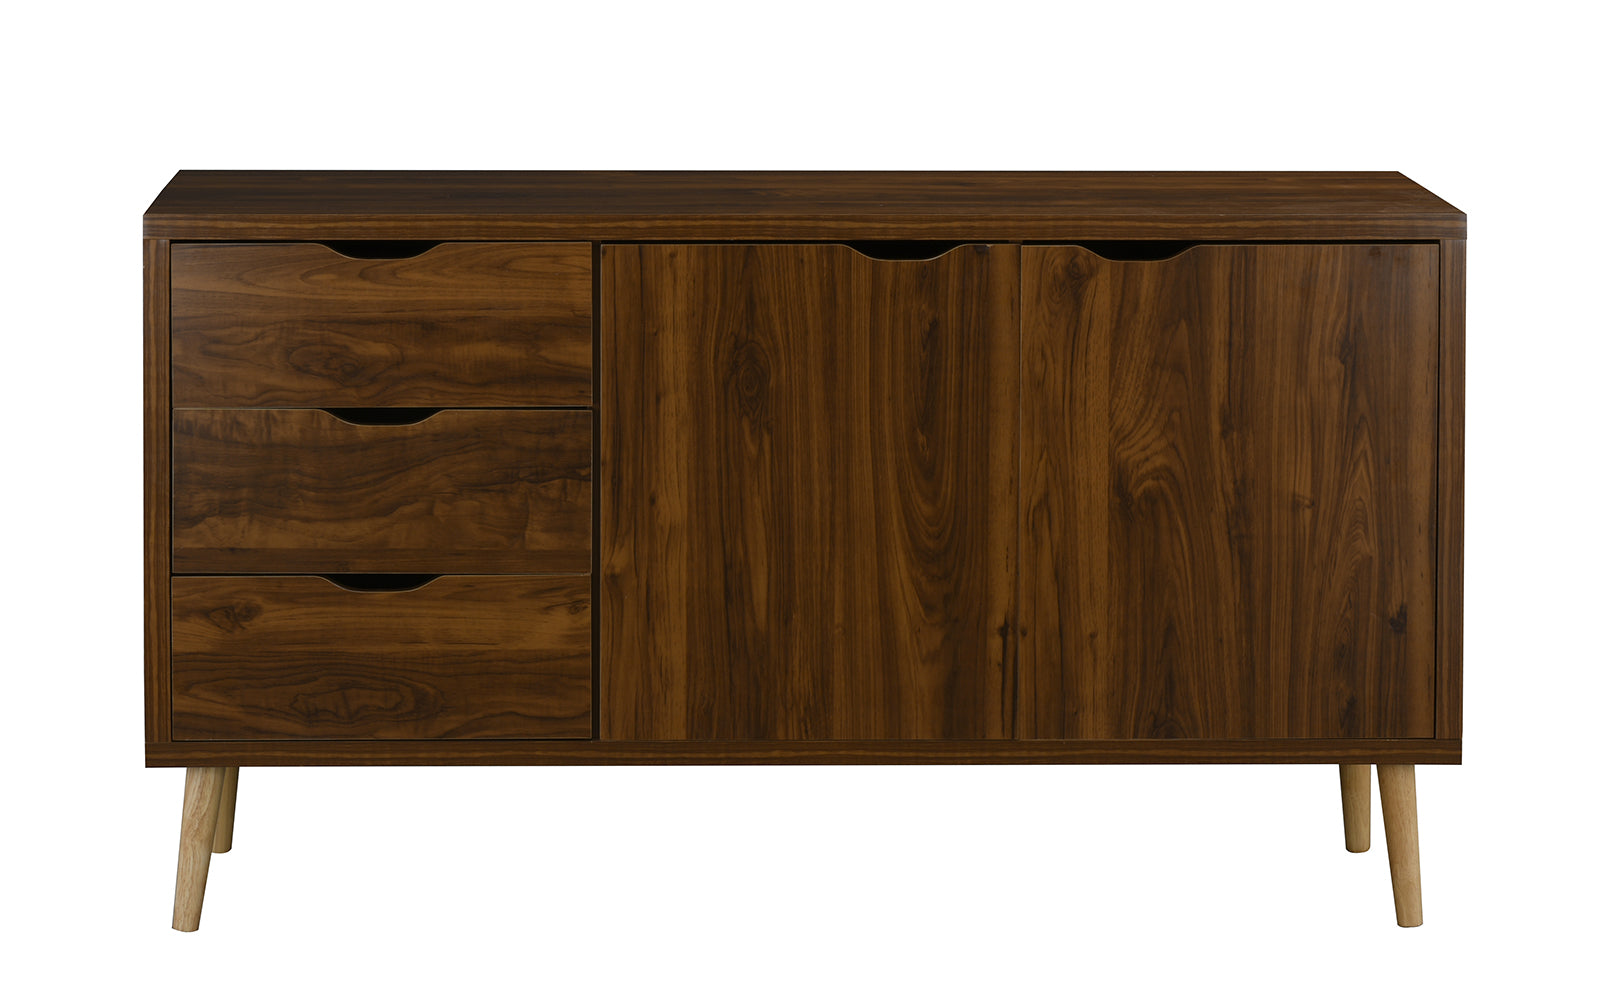 Wooden Tv Stand With Glass Doors Interesting Wall Mount Tv Stand  # Muebles Rudnick